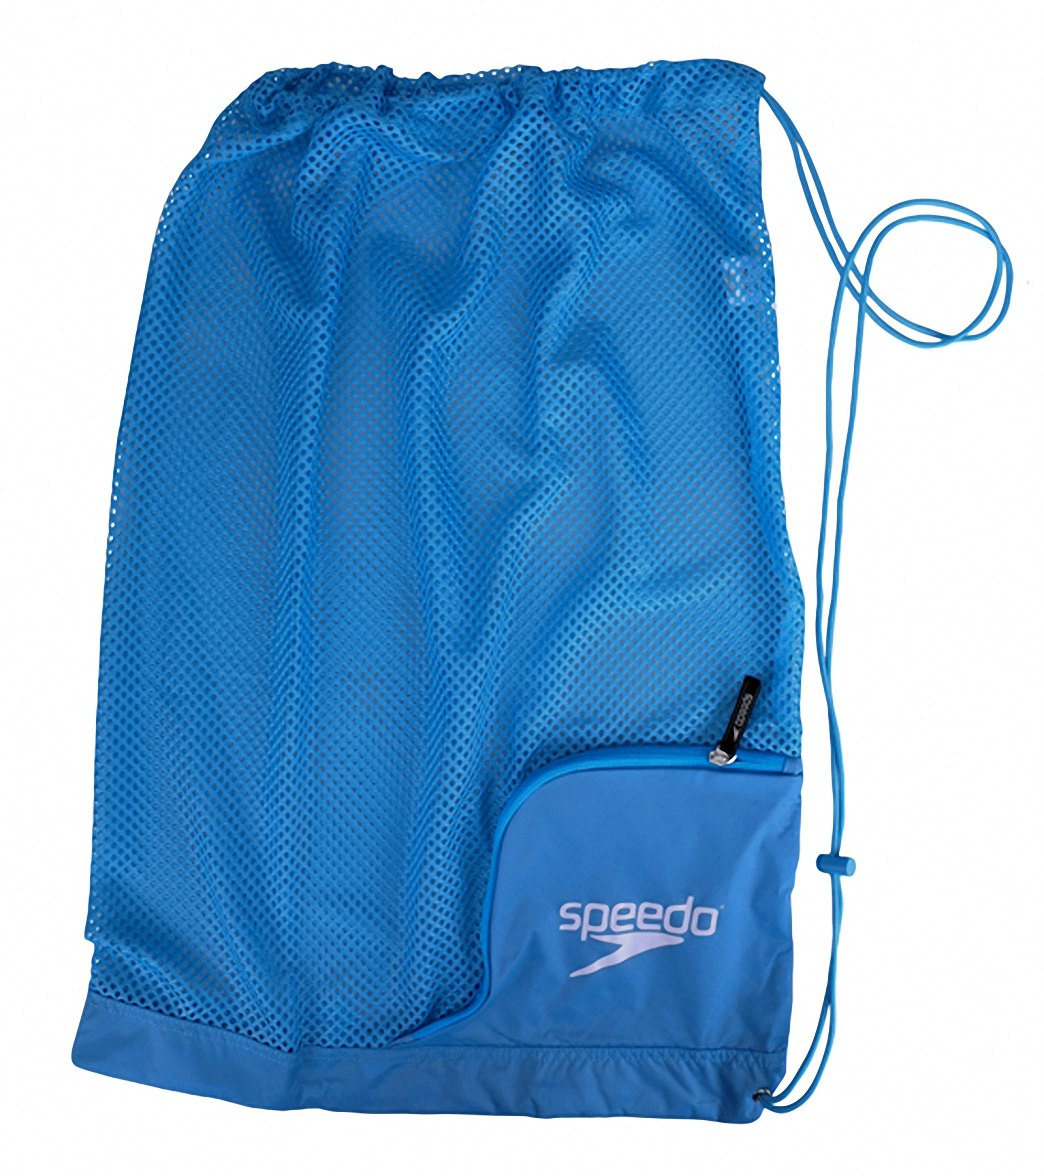 Speedo Ventilator Swimming Mesh Bag